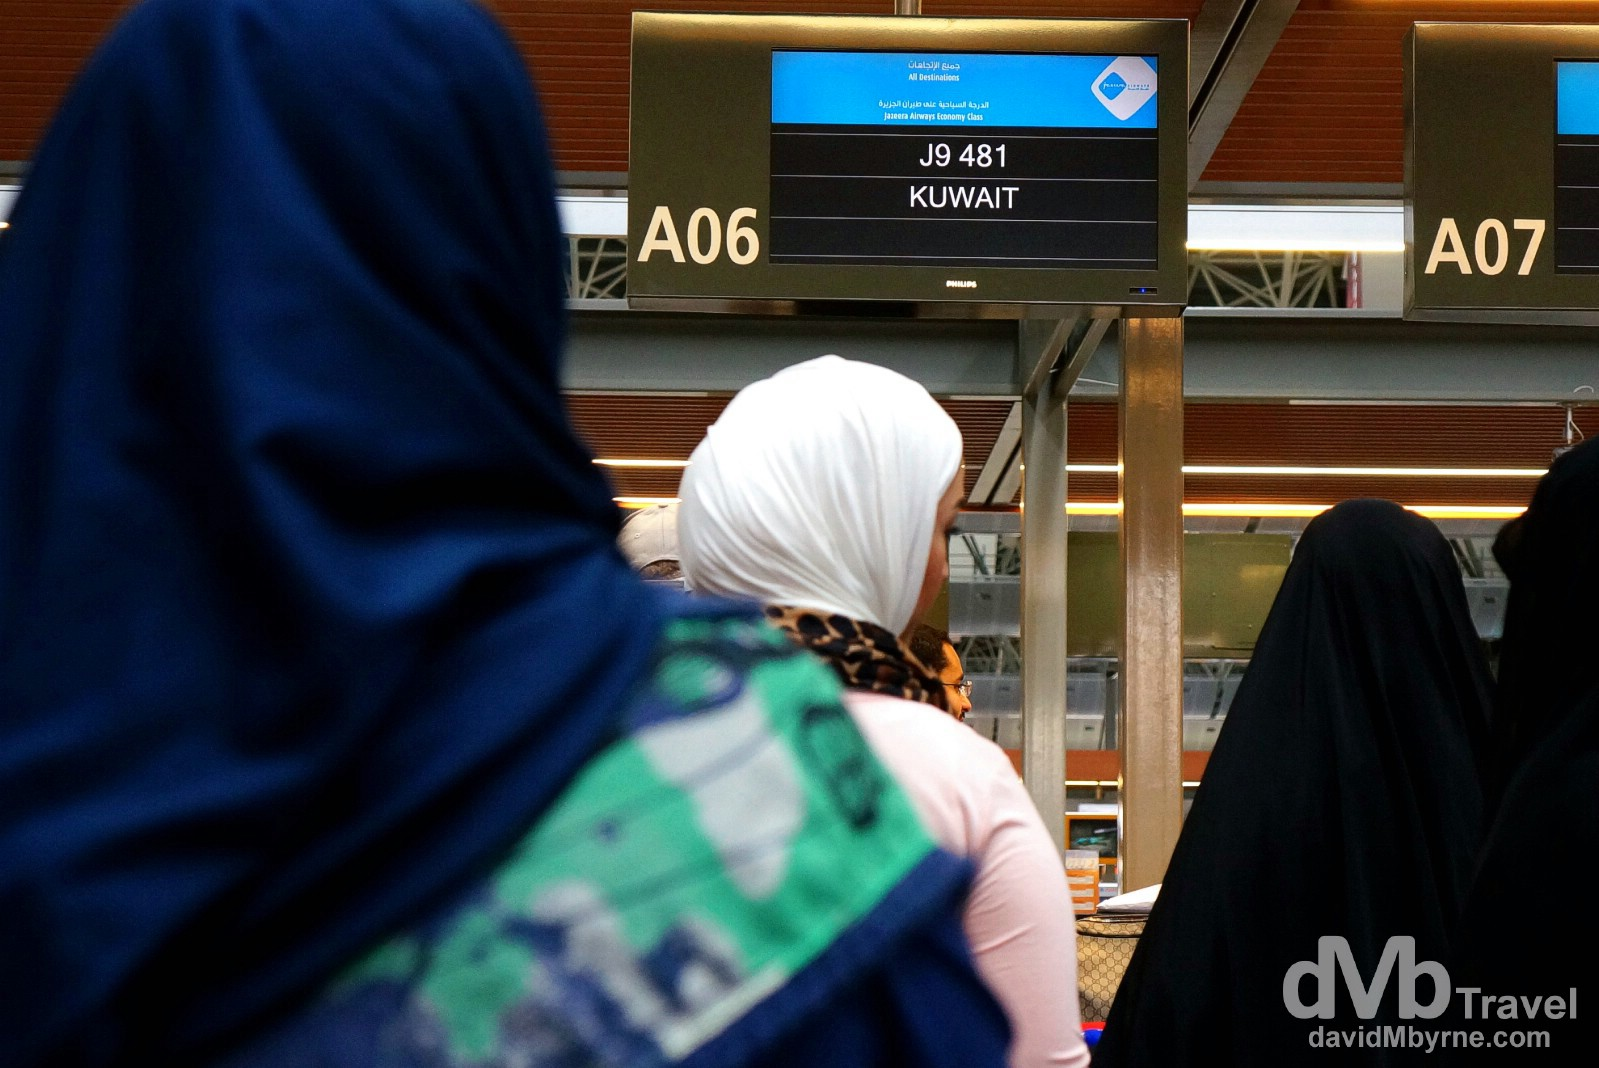 Checking in for Jazeera Airways flight 9481 in Sabiha Gokcen International Airport, Istanbul, Turkey. April 11th, 2014.